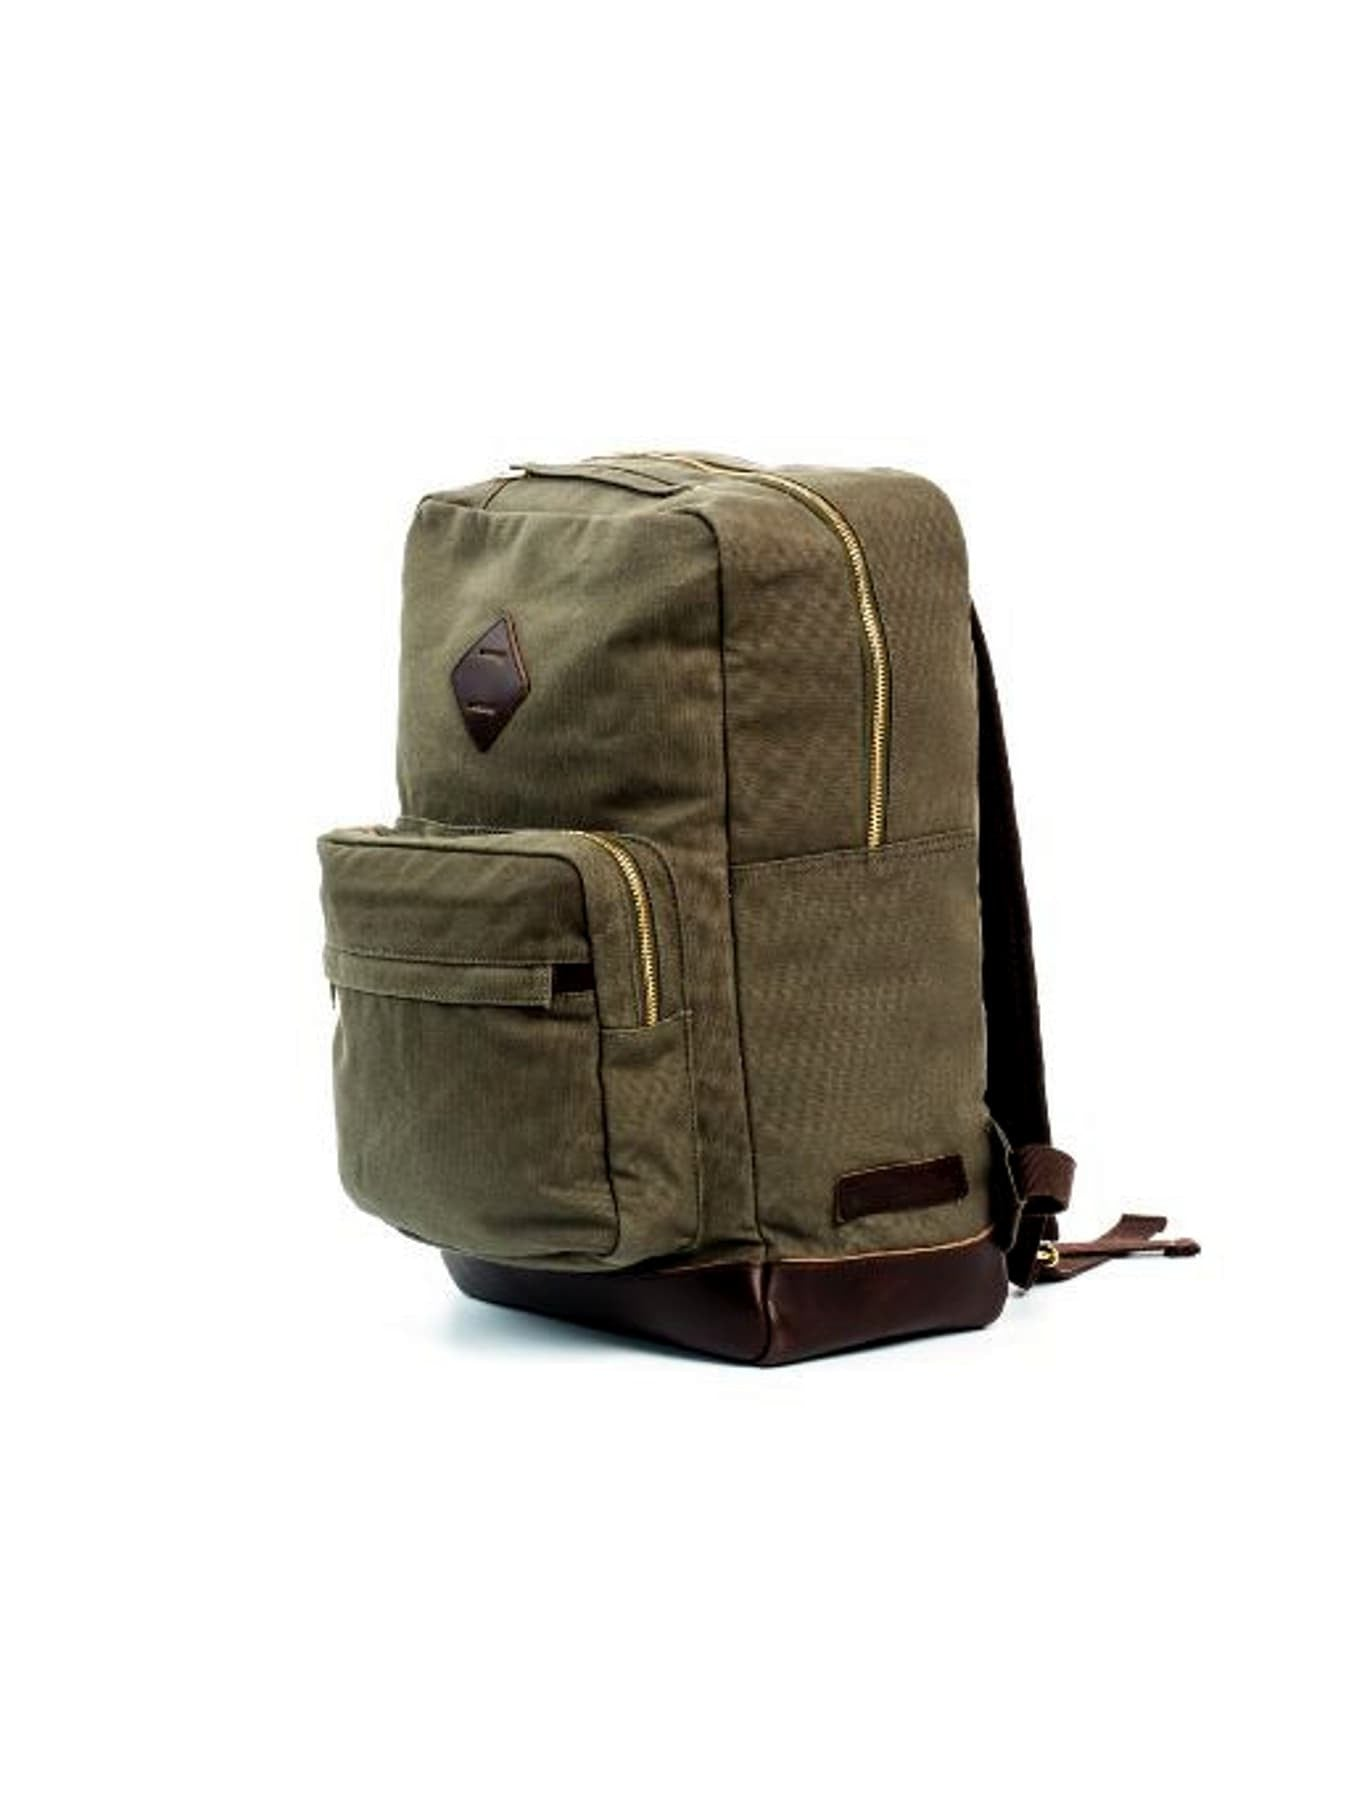 Cotton Canvas and Leather Hudderton Backpack